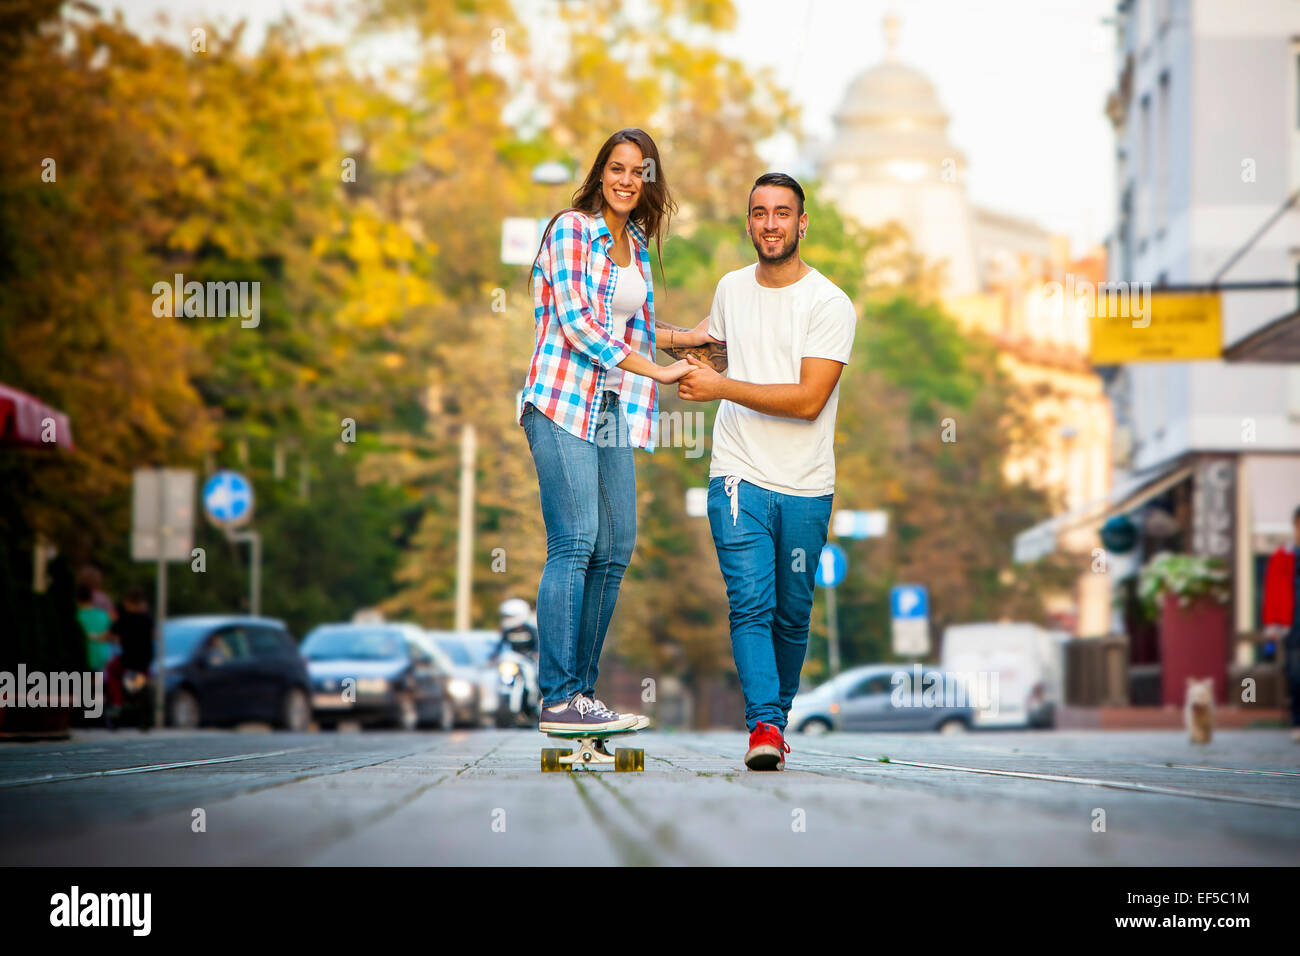 Young woman skateboarding on city street, man assisting - Stock Image